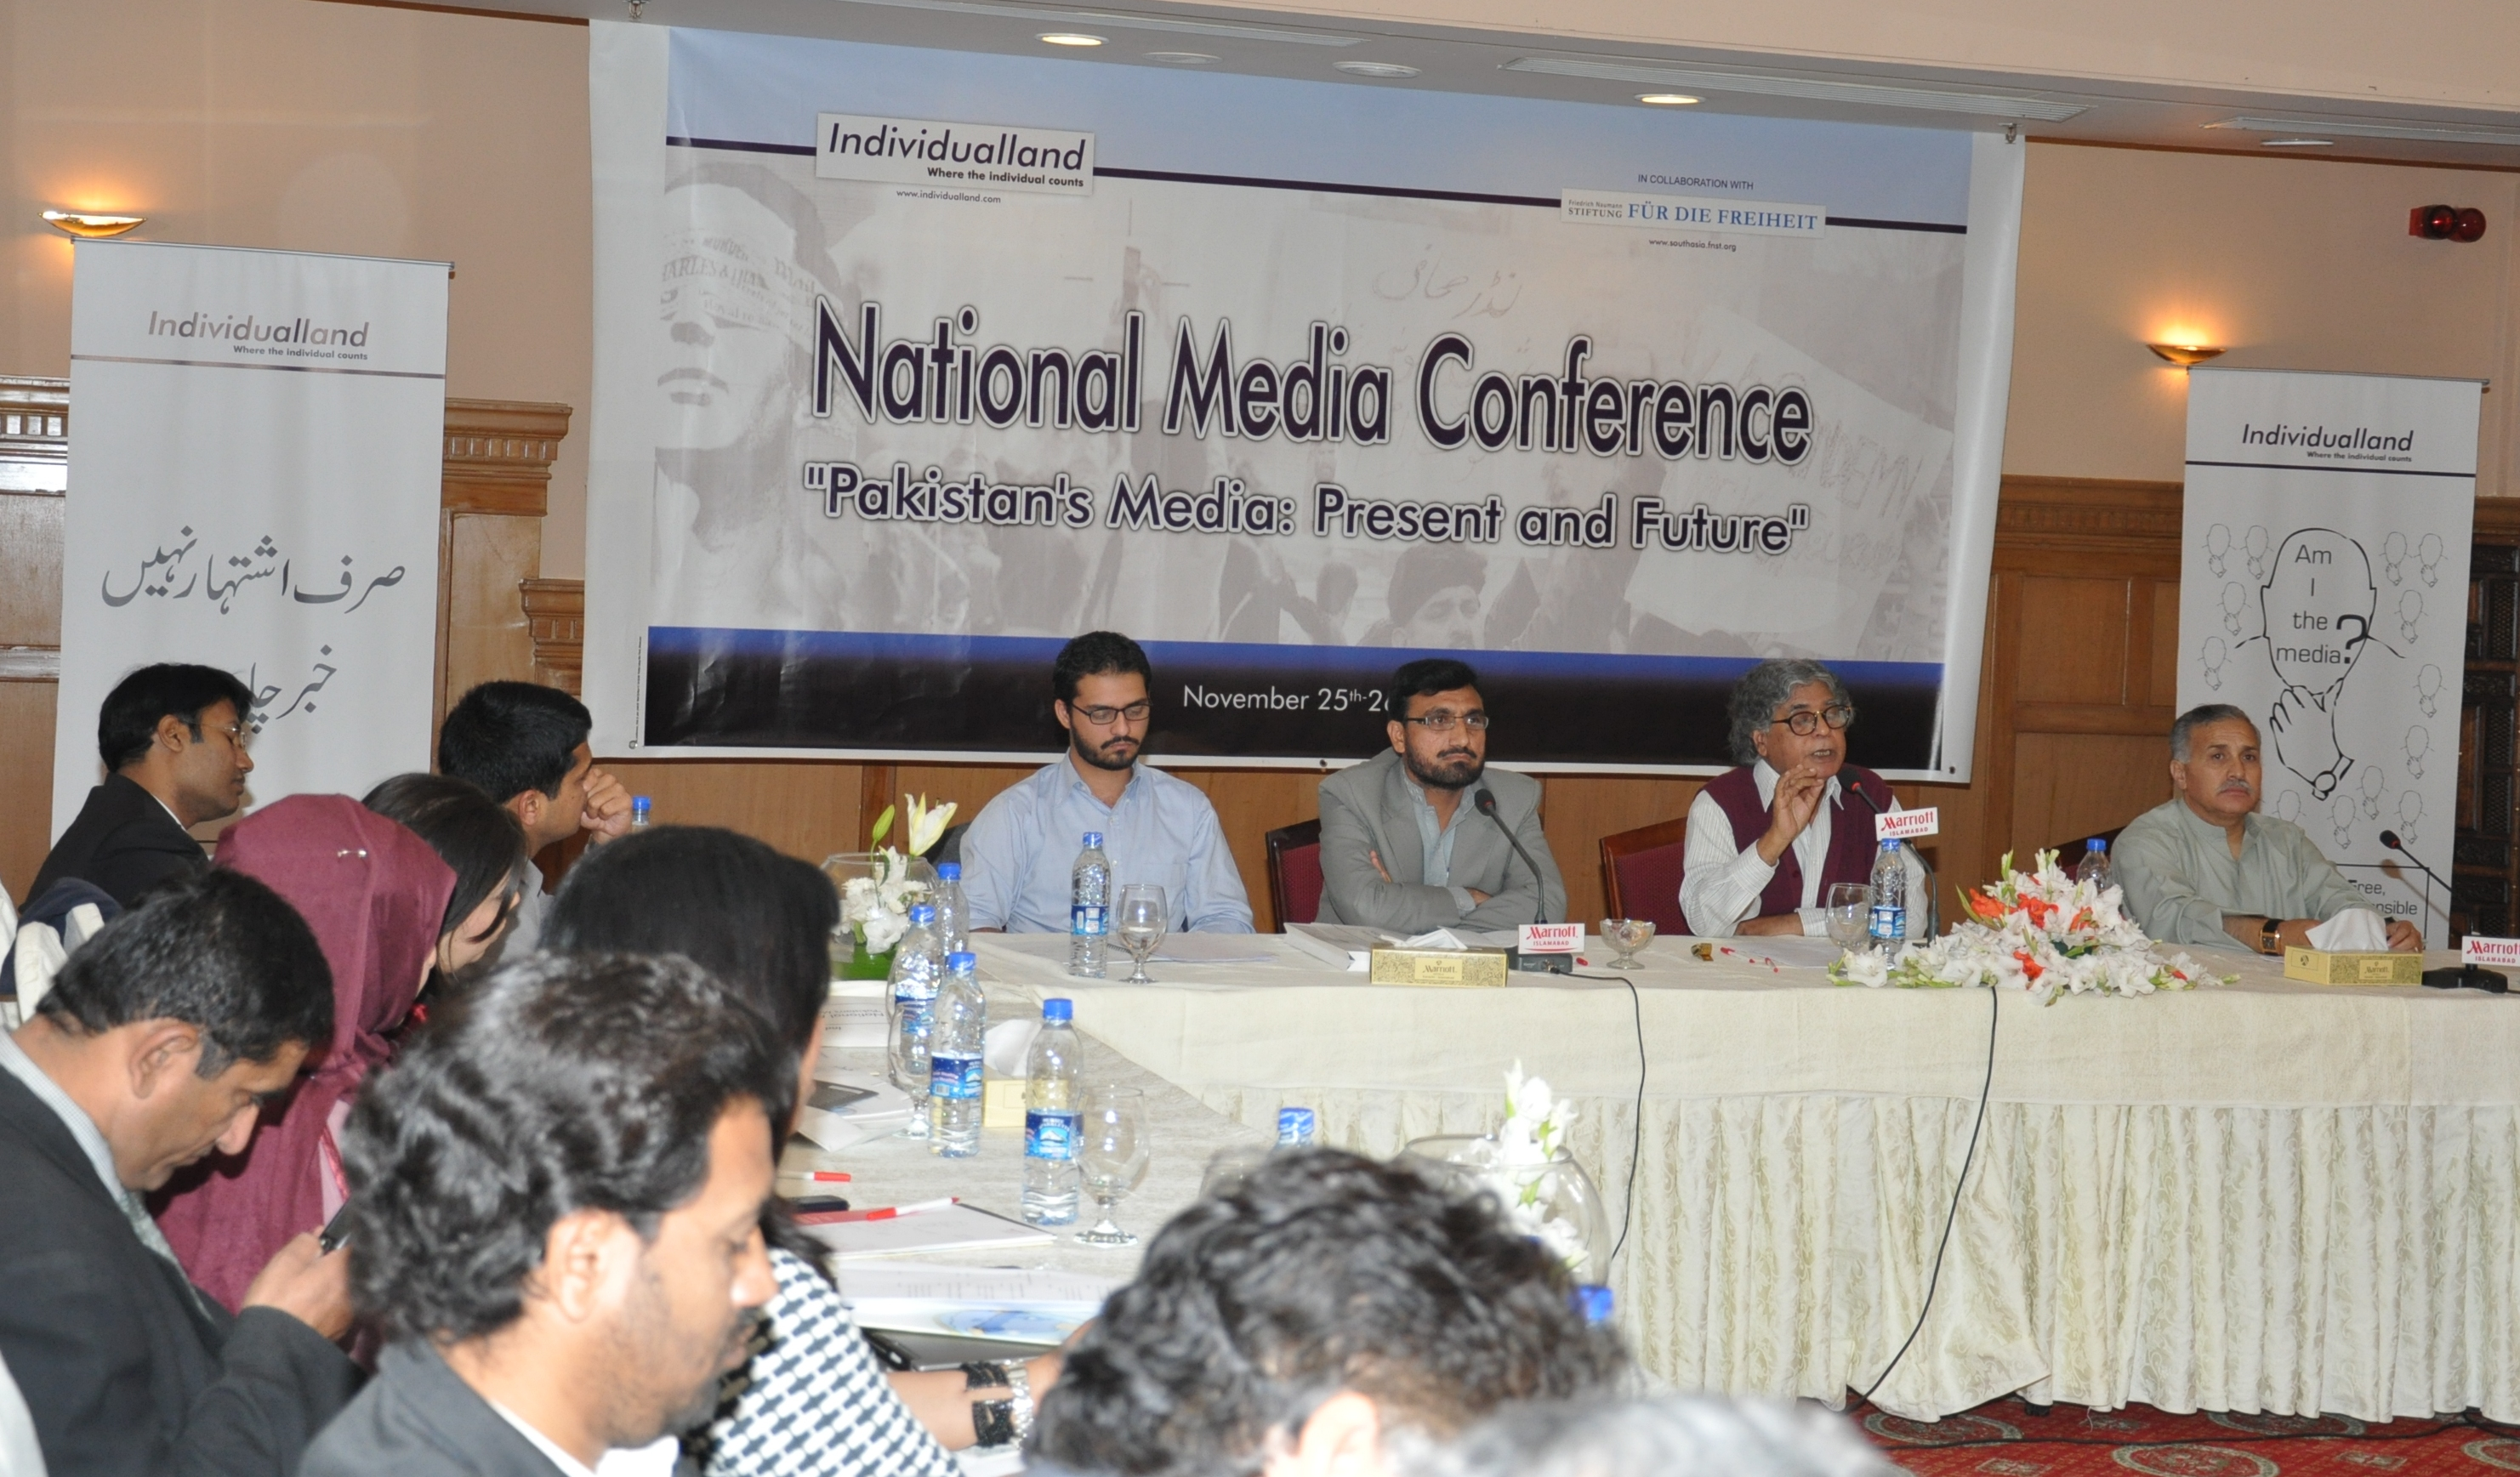 Foto: National Media Conference: Pakistan's media, present & future criticalppp.com